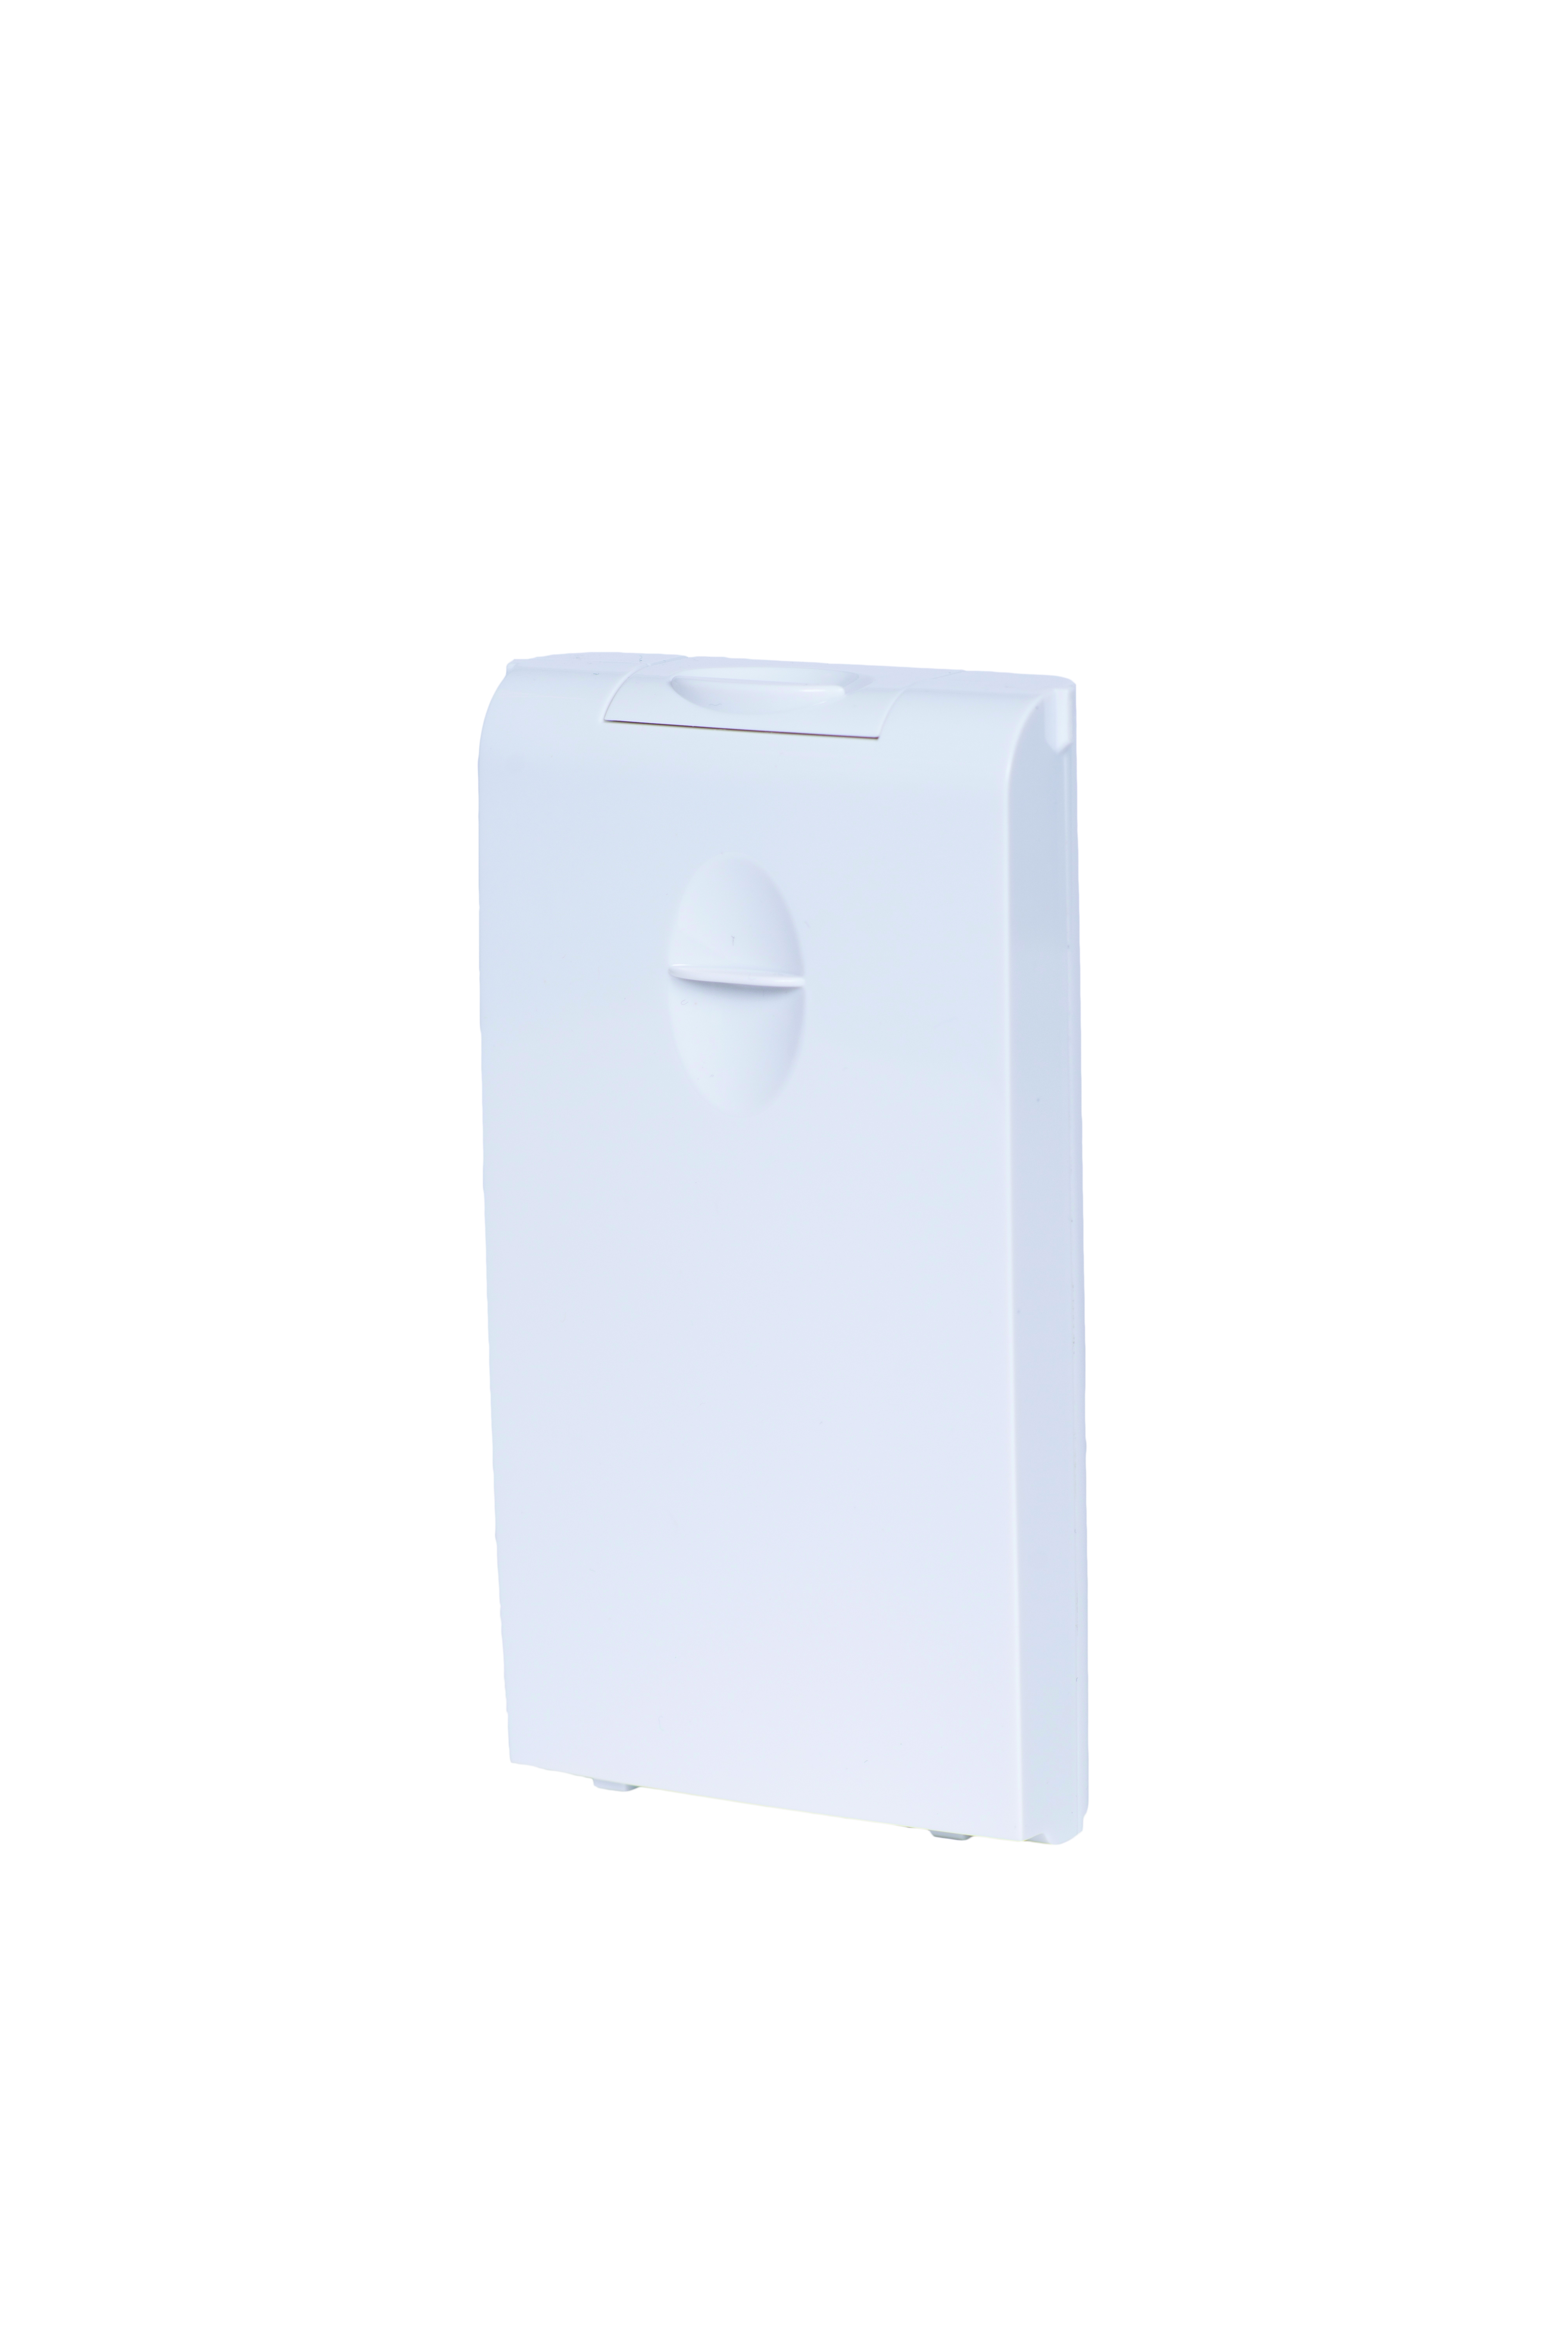 White AirSep FreeStyle 3 Battery